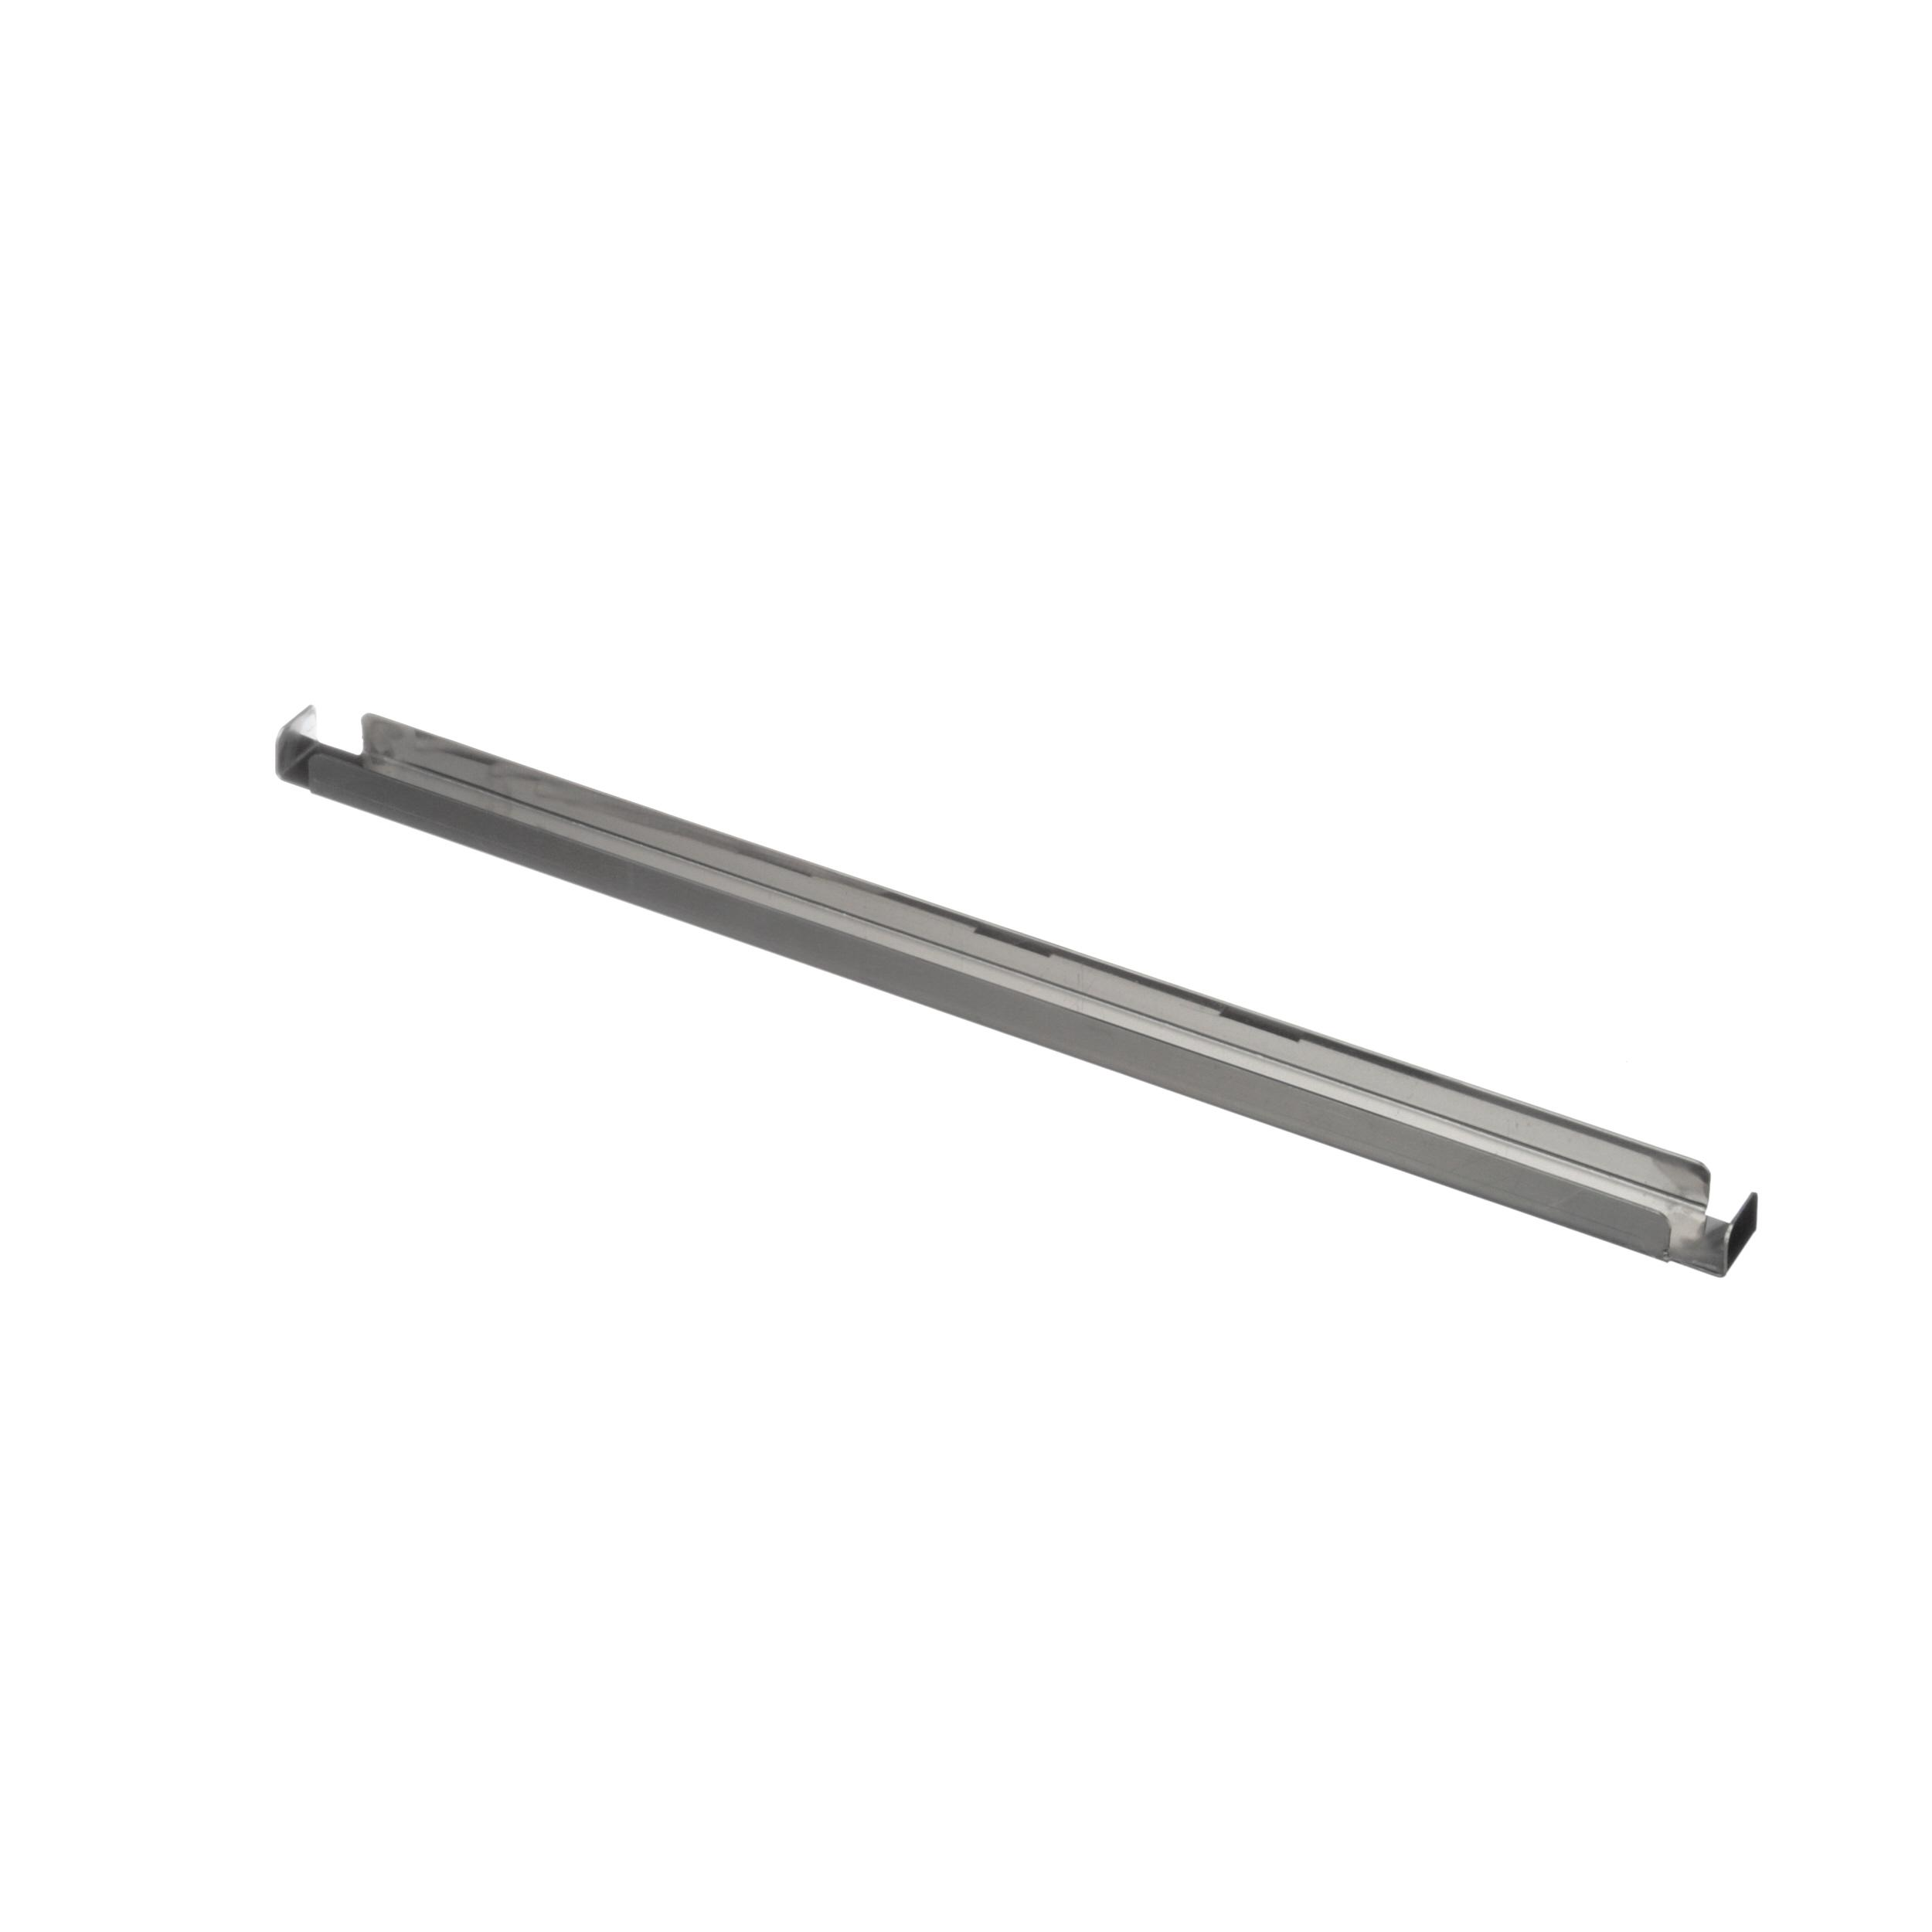 DELFIELD DIVIDER BAR 6M PAN INSERT